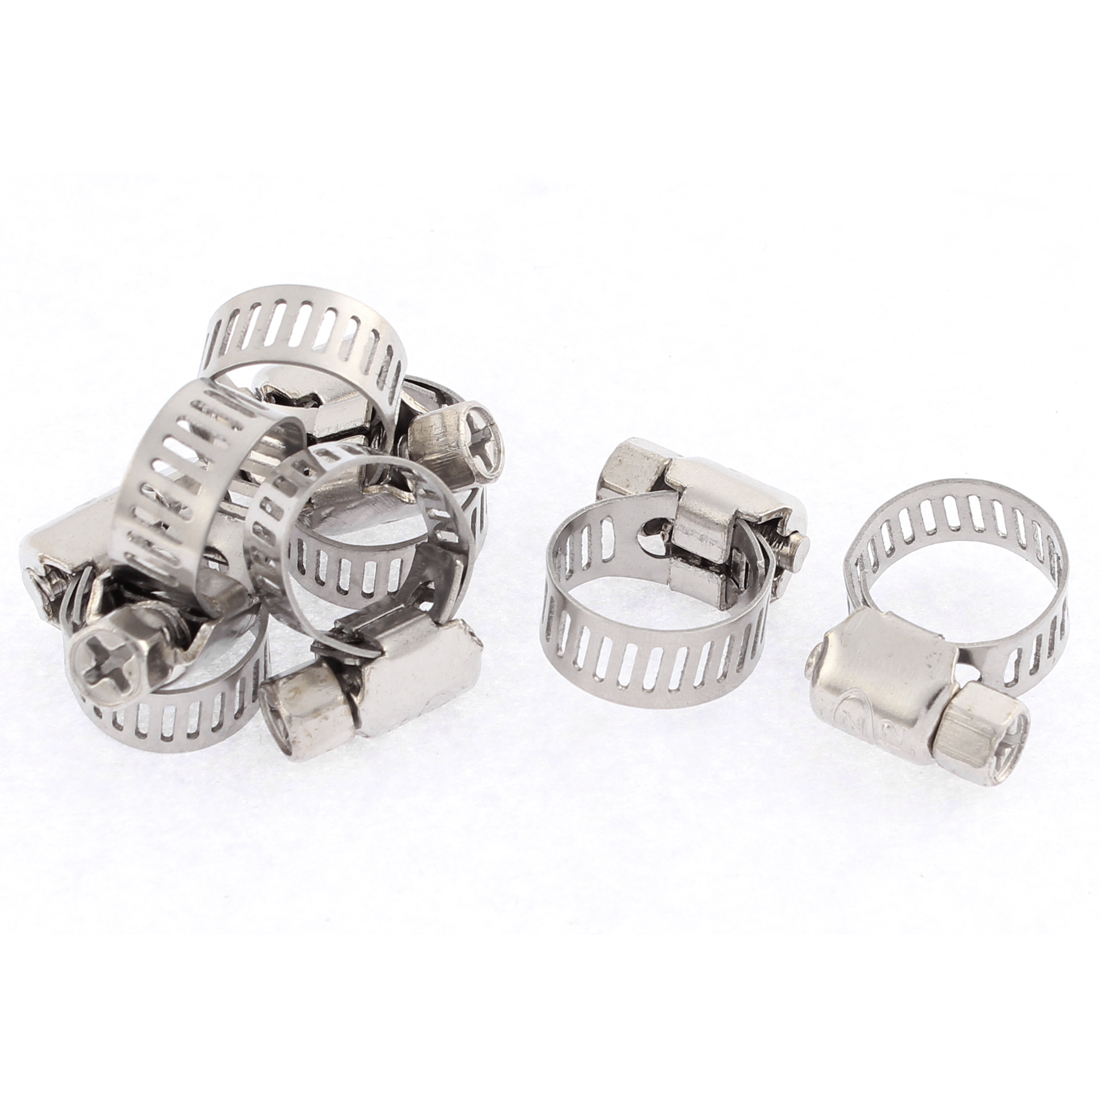 Adjustable 8-12mm Tight Cable Coolant Hose Pipe Clamp 7Pcs